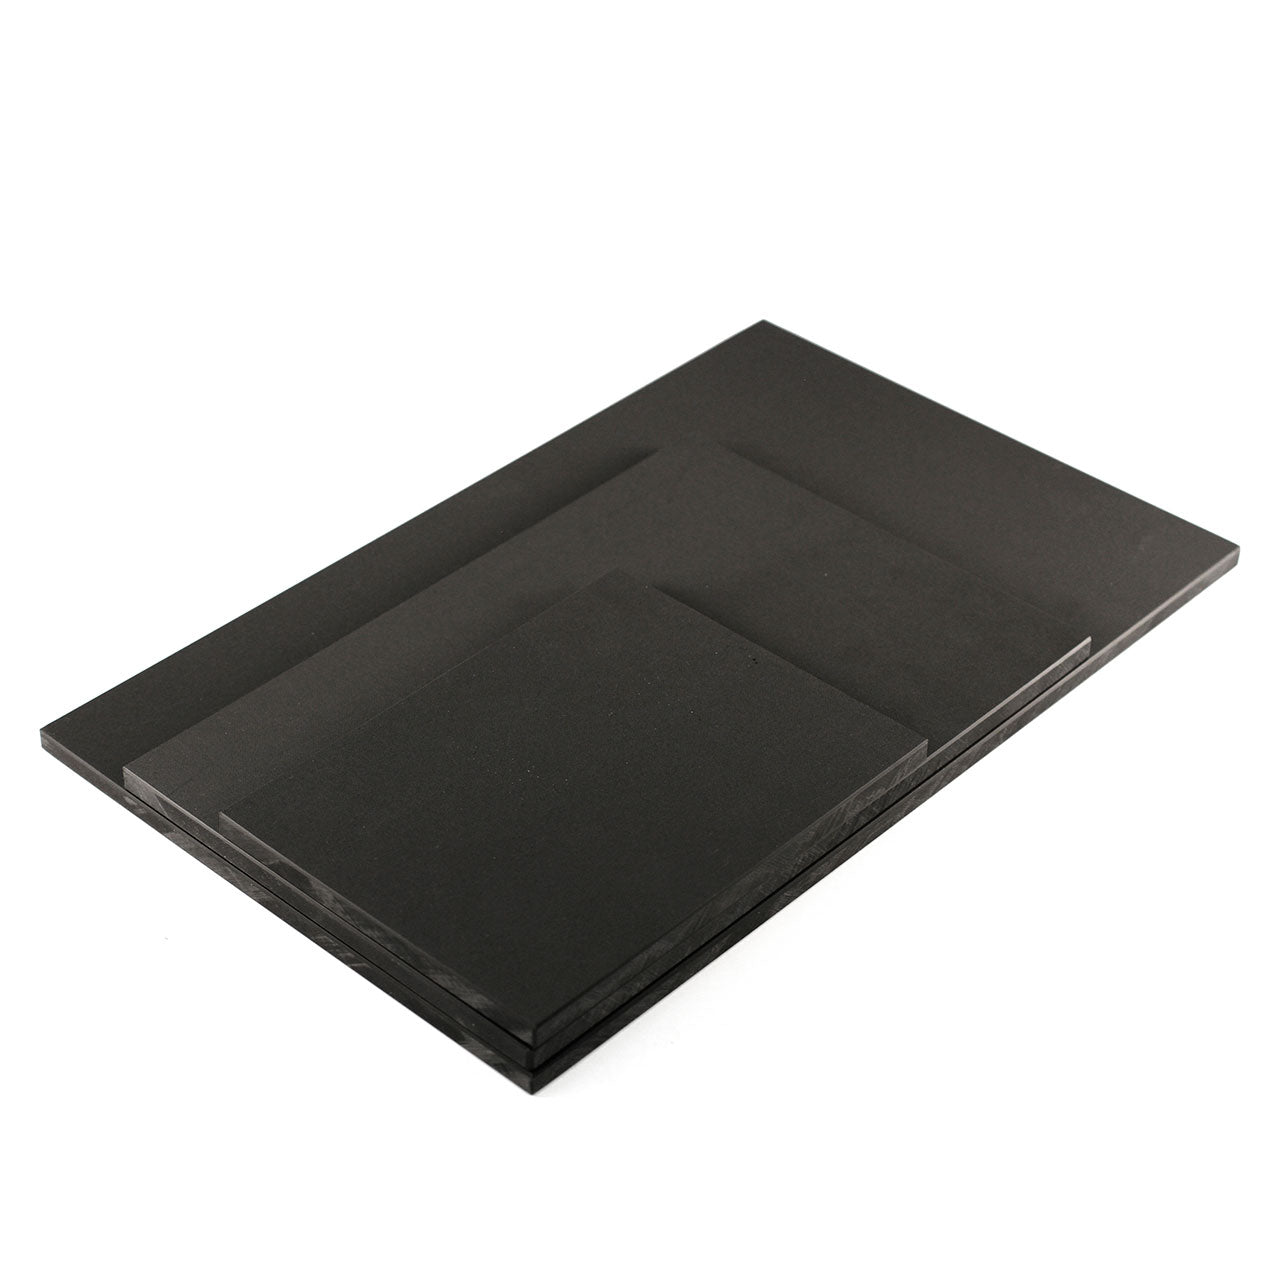 "Tenryo Black Embossed High Contrast Cutting Board 0.4"" ht"